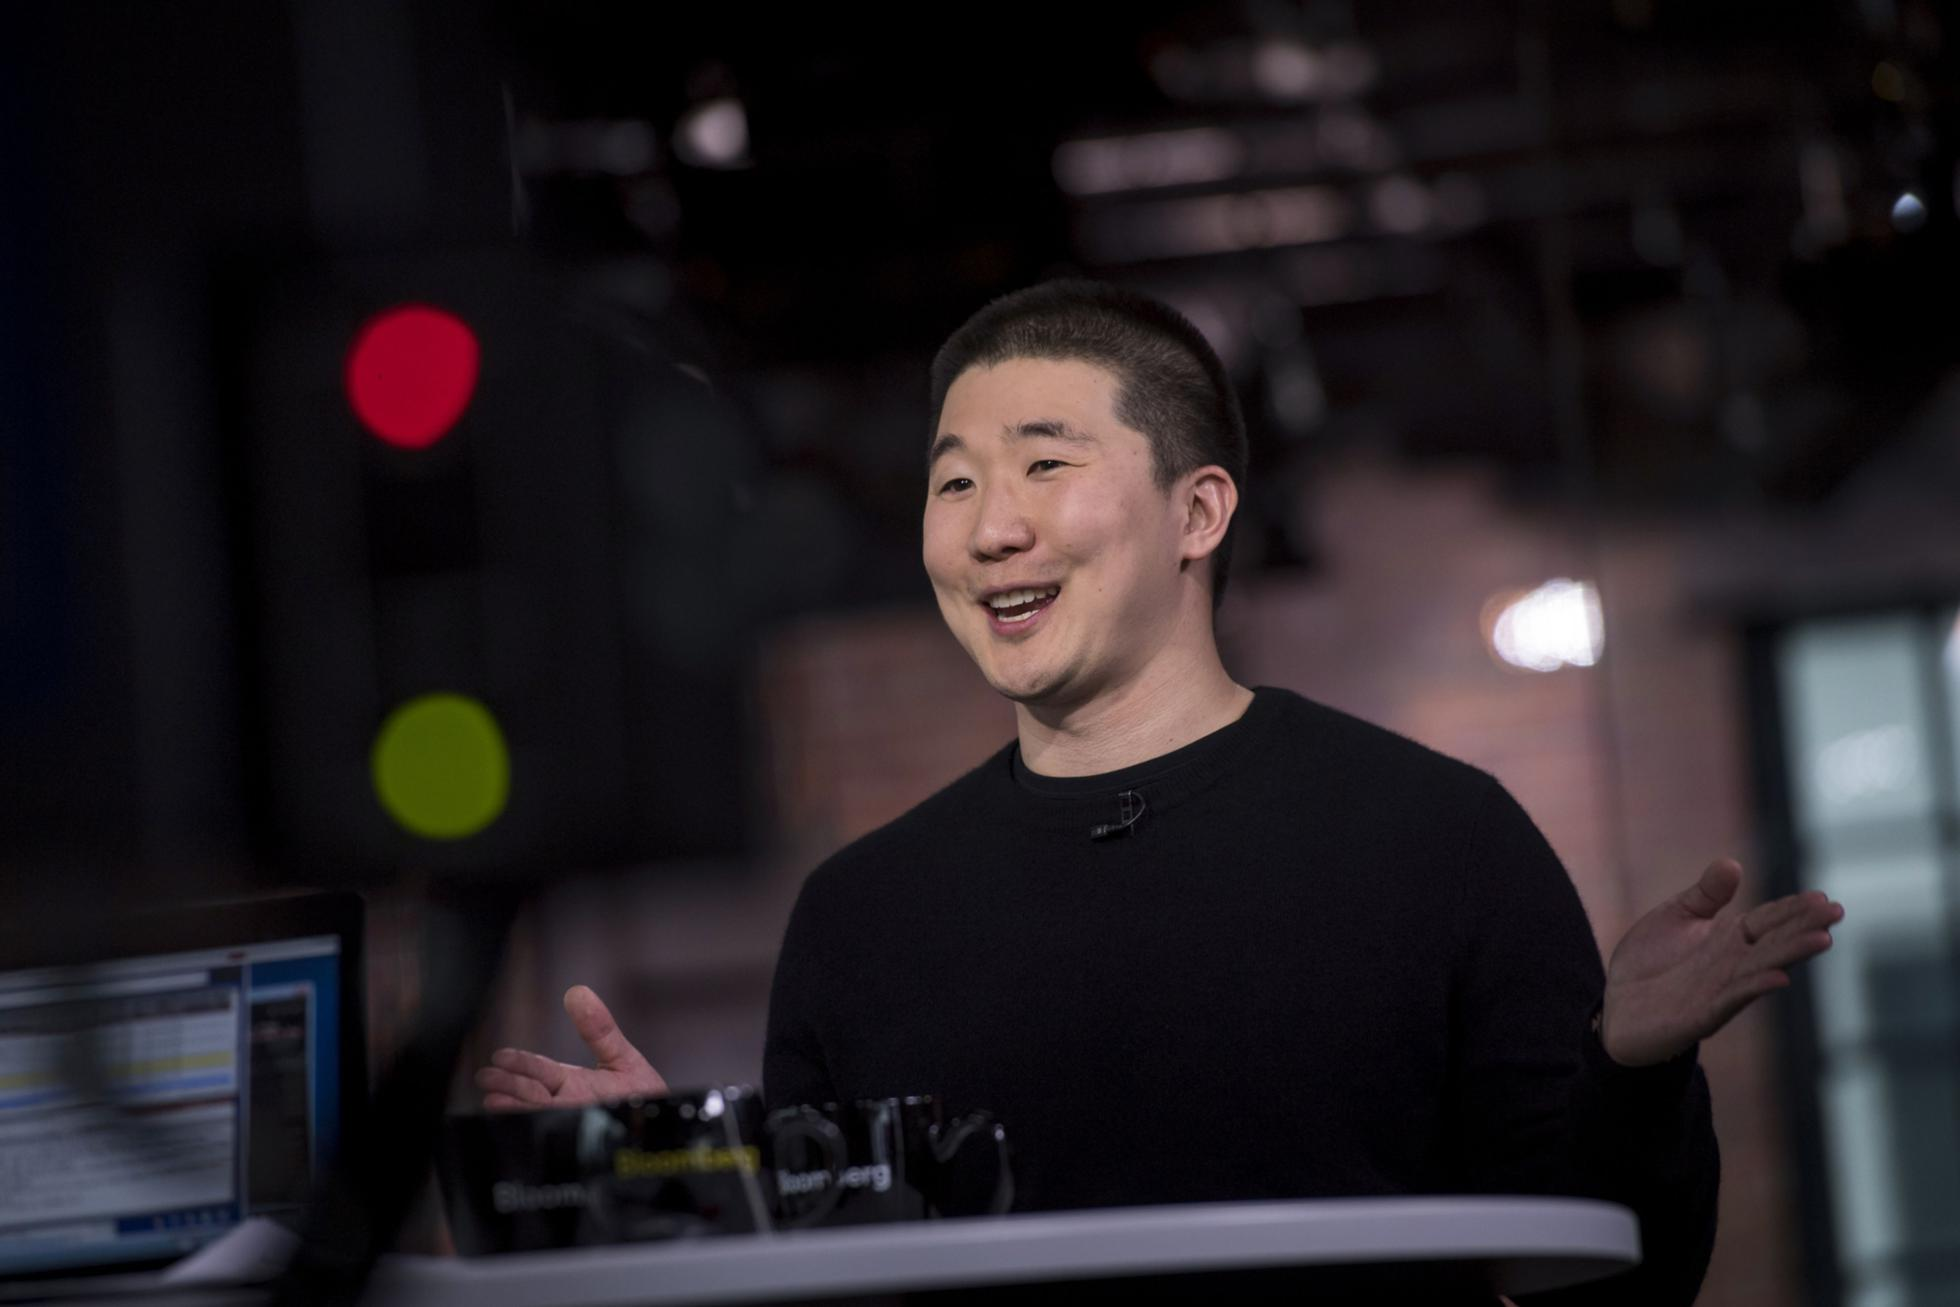 Airtable Co-Founder and Chief Executive Officer Howie Liu Interview